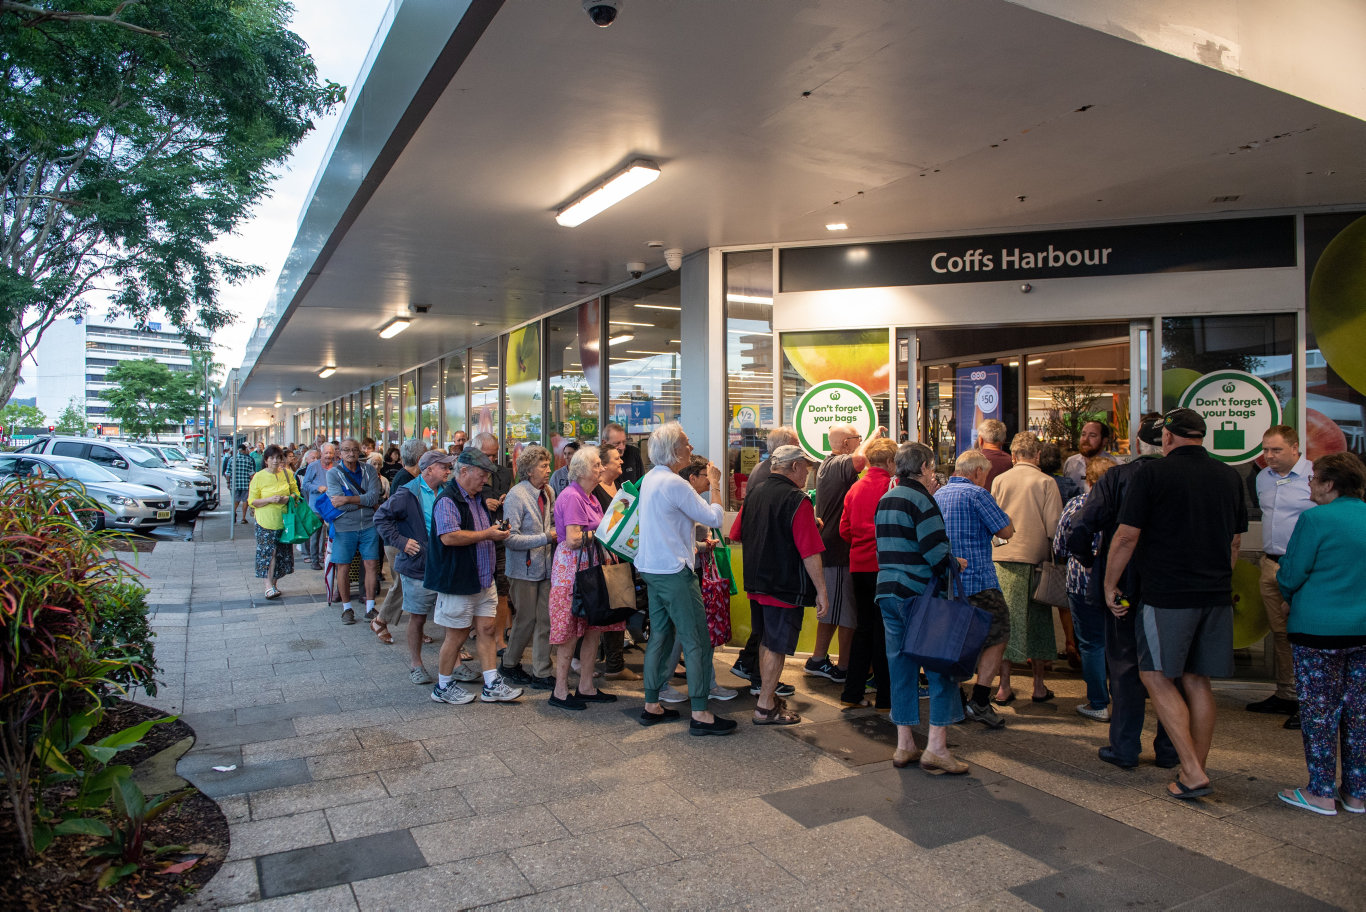 Pension card holders queue up outside Woolworths Coffs Harbour early this morning.